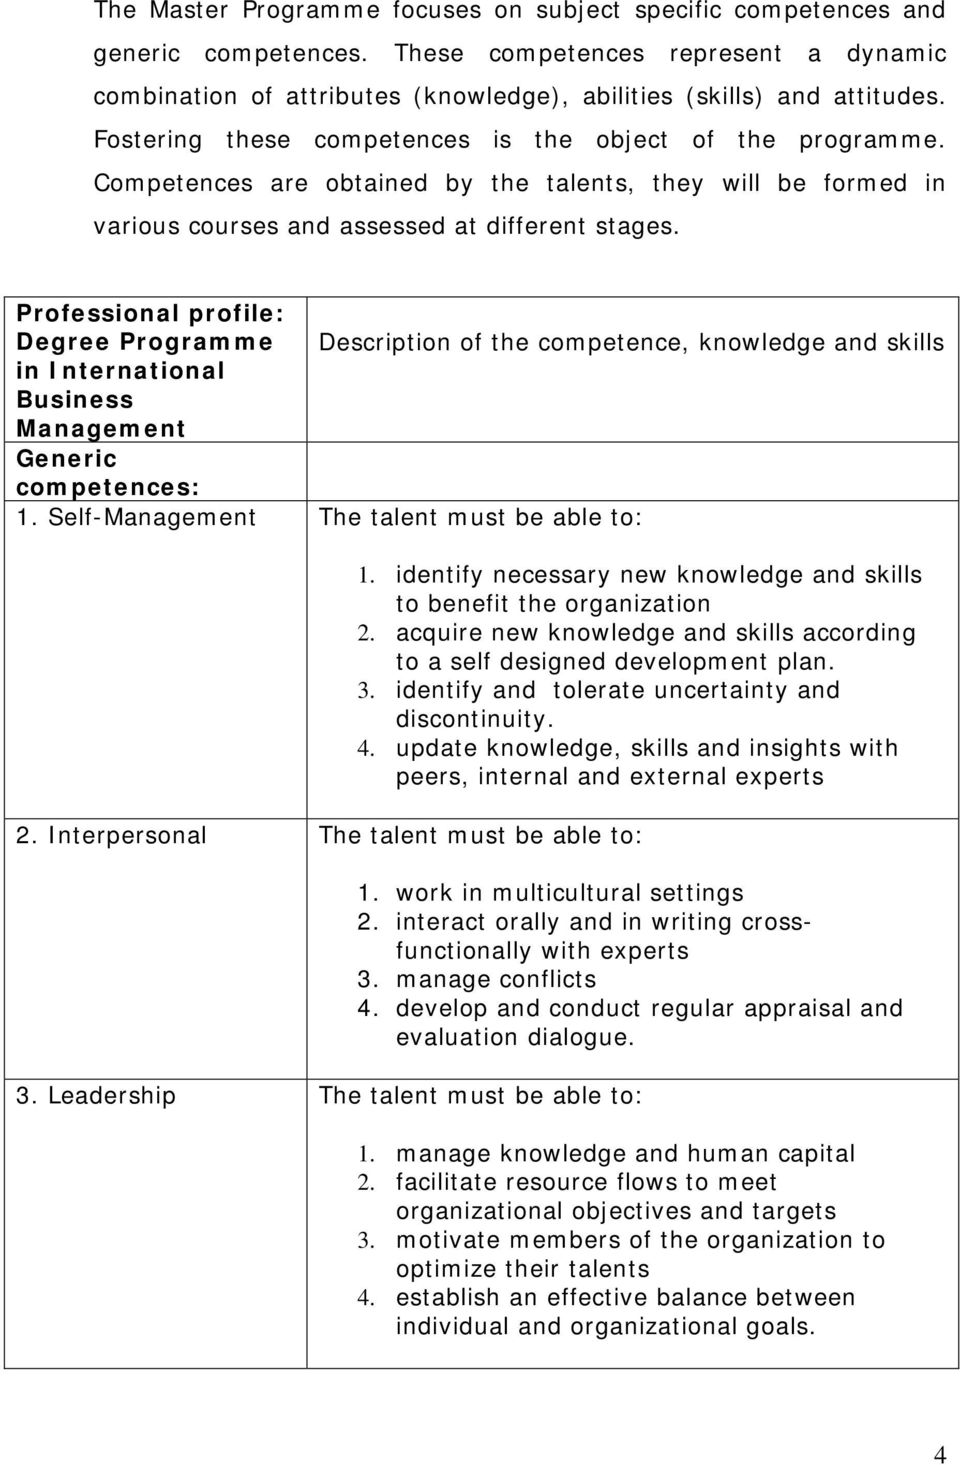 Professional profile: Degree Programme Description of the competence, knowledge and skills in International Business Management Generic competences: 1. Self-Management The talent must be able to: 1.